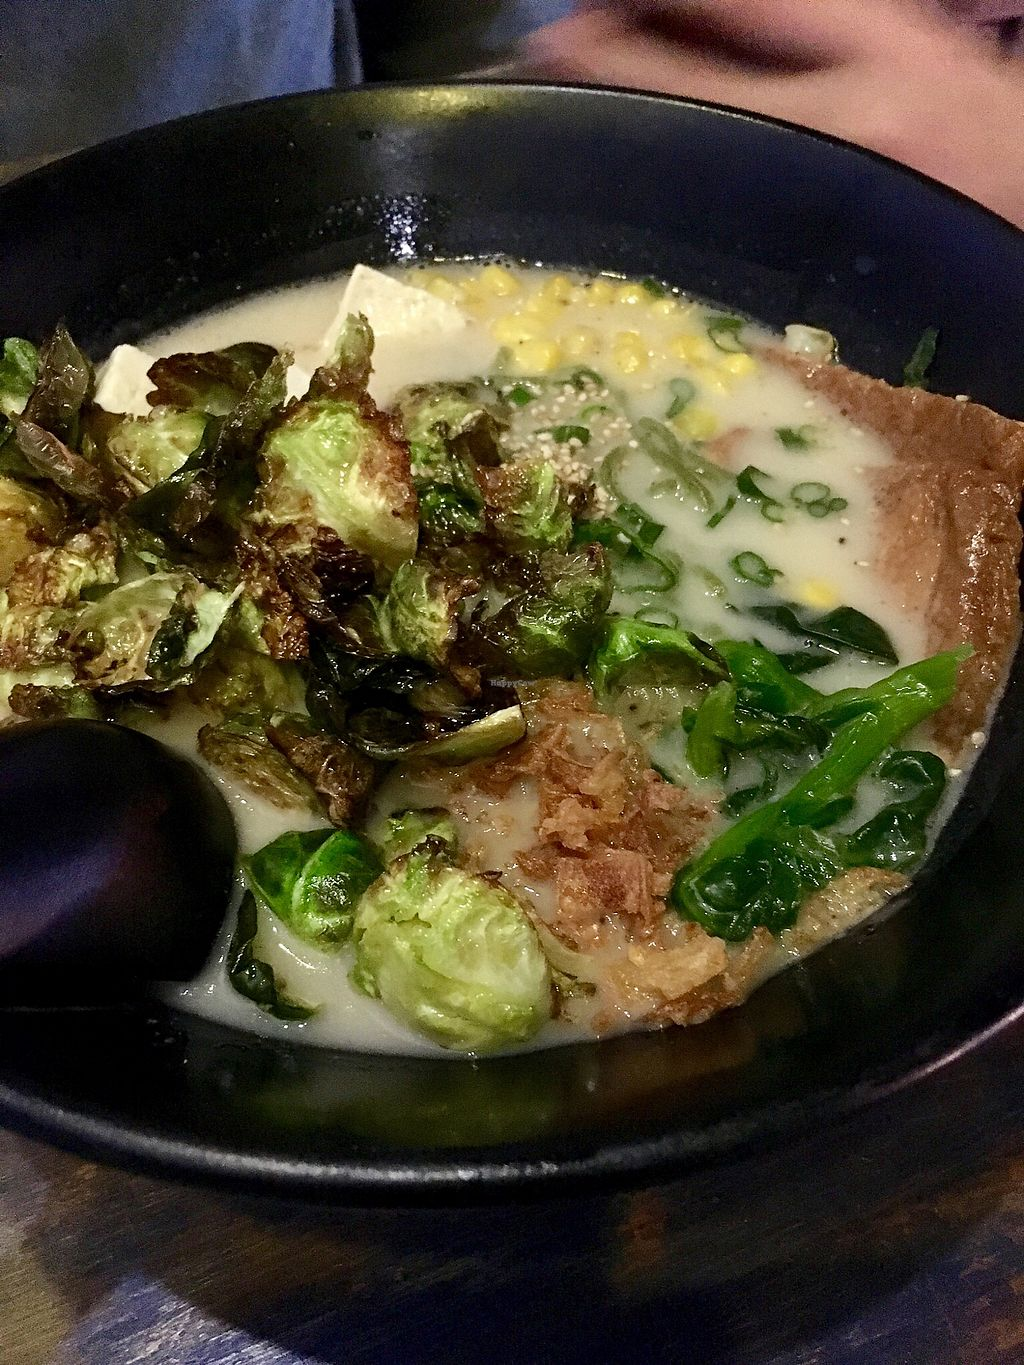 """Photo of Ohyama Ramen  by <a href=""""/members/profile/clovely.vegan"""">clovely.vegan</a> <br/>Creamy Vegan <br/> February 23, 2018  - <a href='/contact/abuse/image/109678/362751'>Report</a>"""